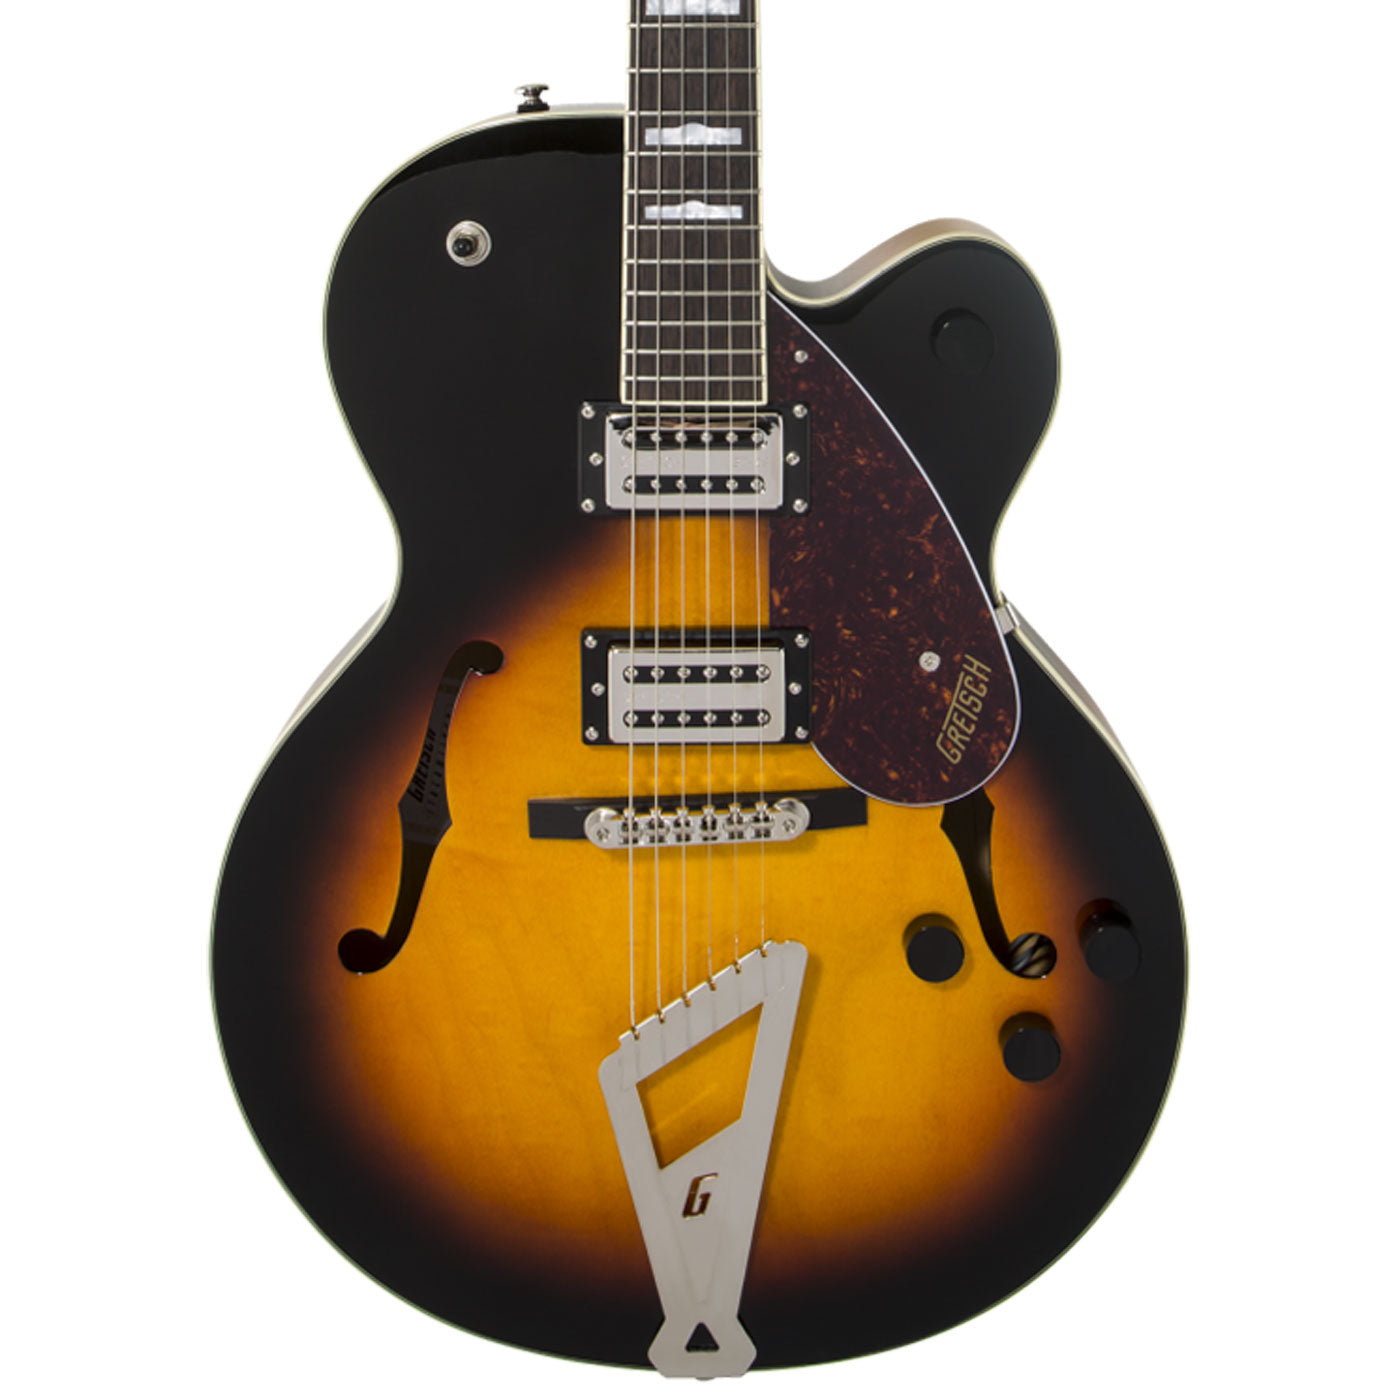 Gretsch G2420 Hollow Single Cut, Aged Brooklyn Burst